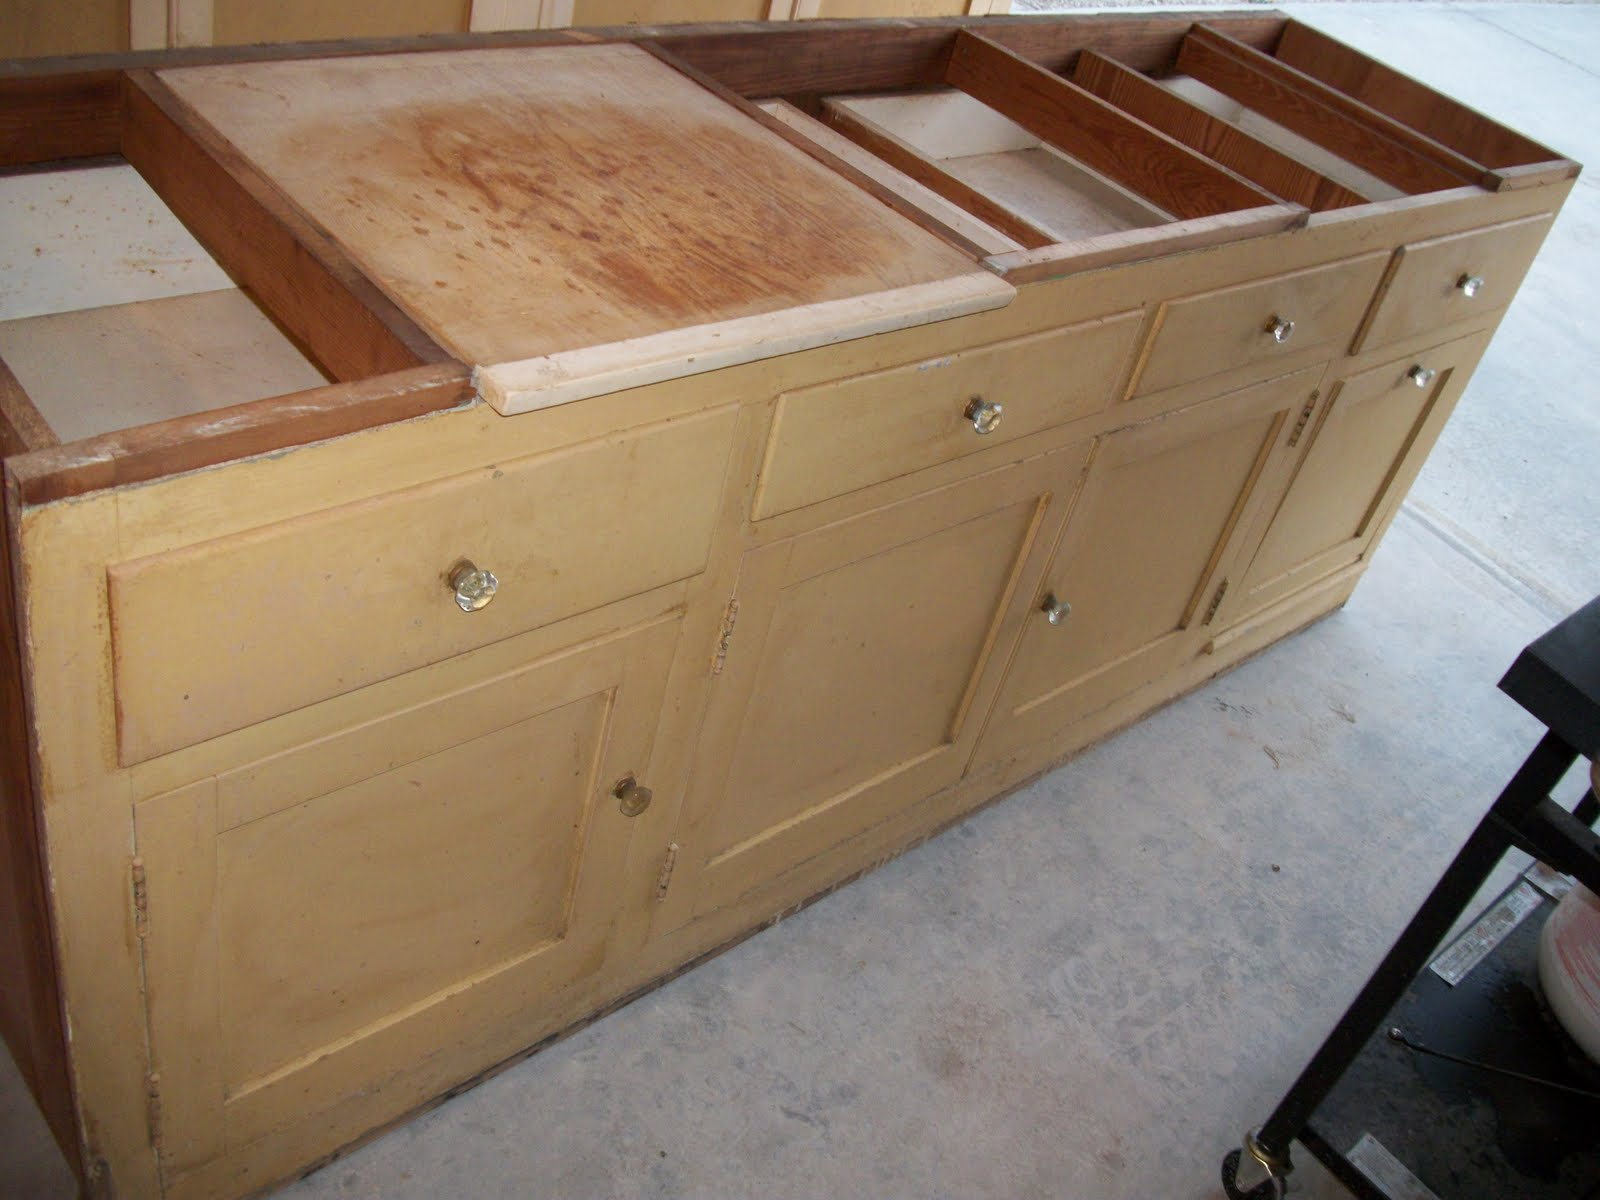 The Top Has A Bead Board Backing Inside And Old Crystal Knobs. The Base  Holds Two Cutting Boards U0026 Has A Potato Cabinet.